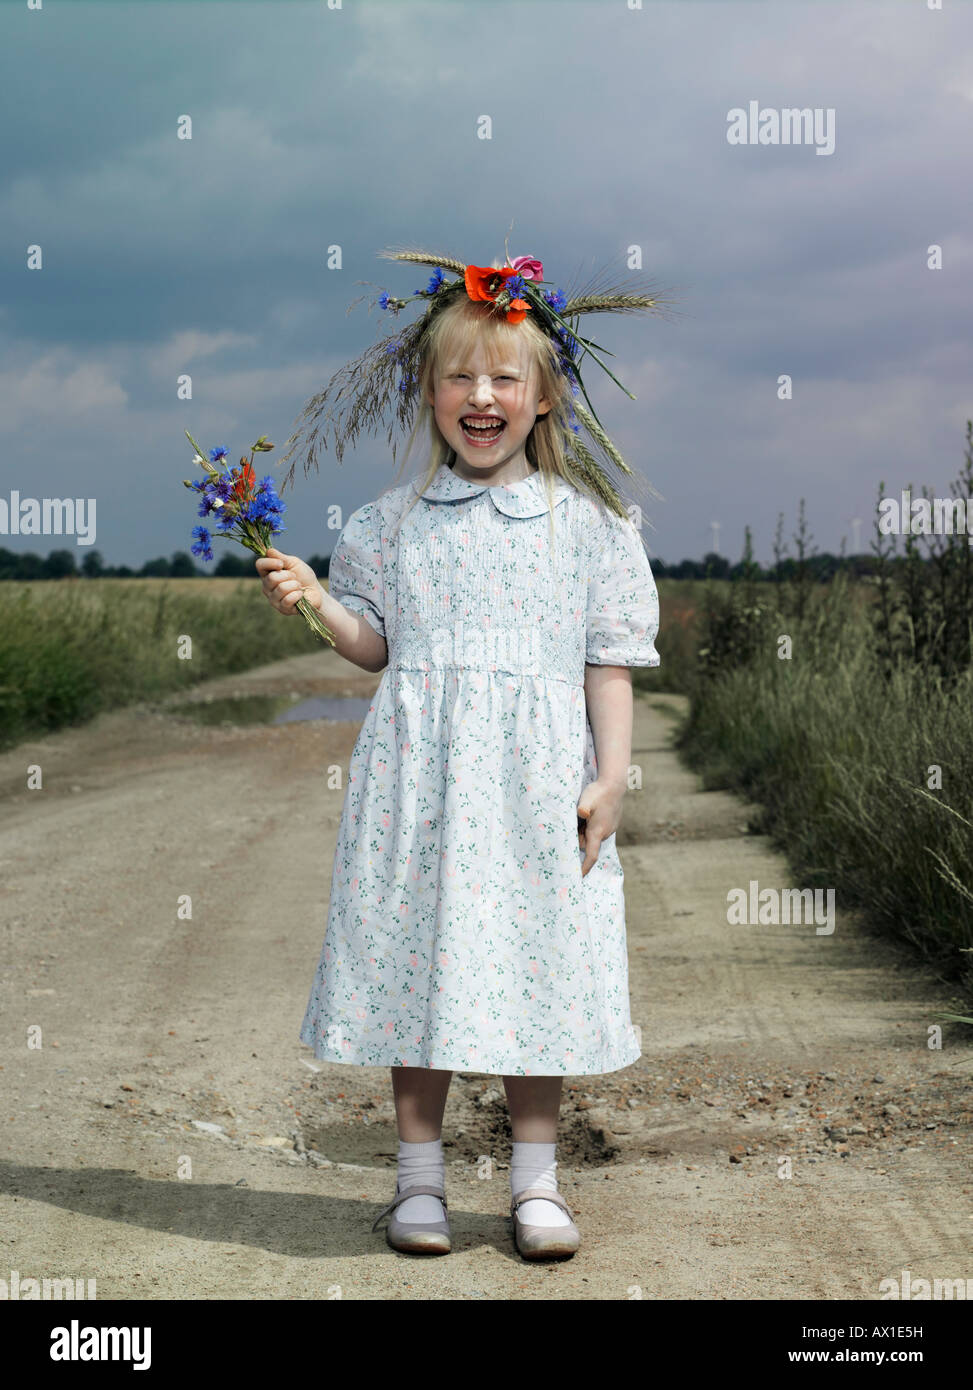 A girl standing on a country road and holding wildflowers - Stock Image